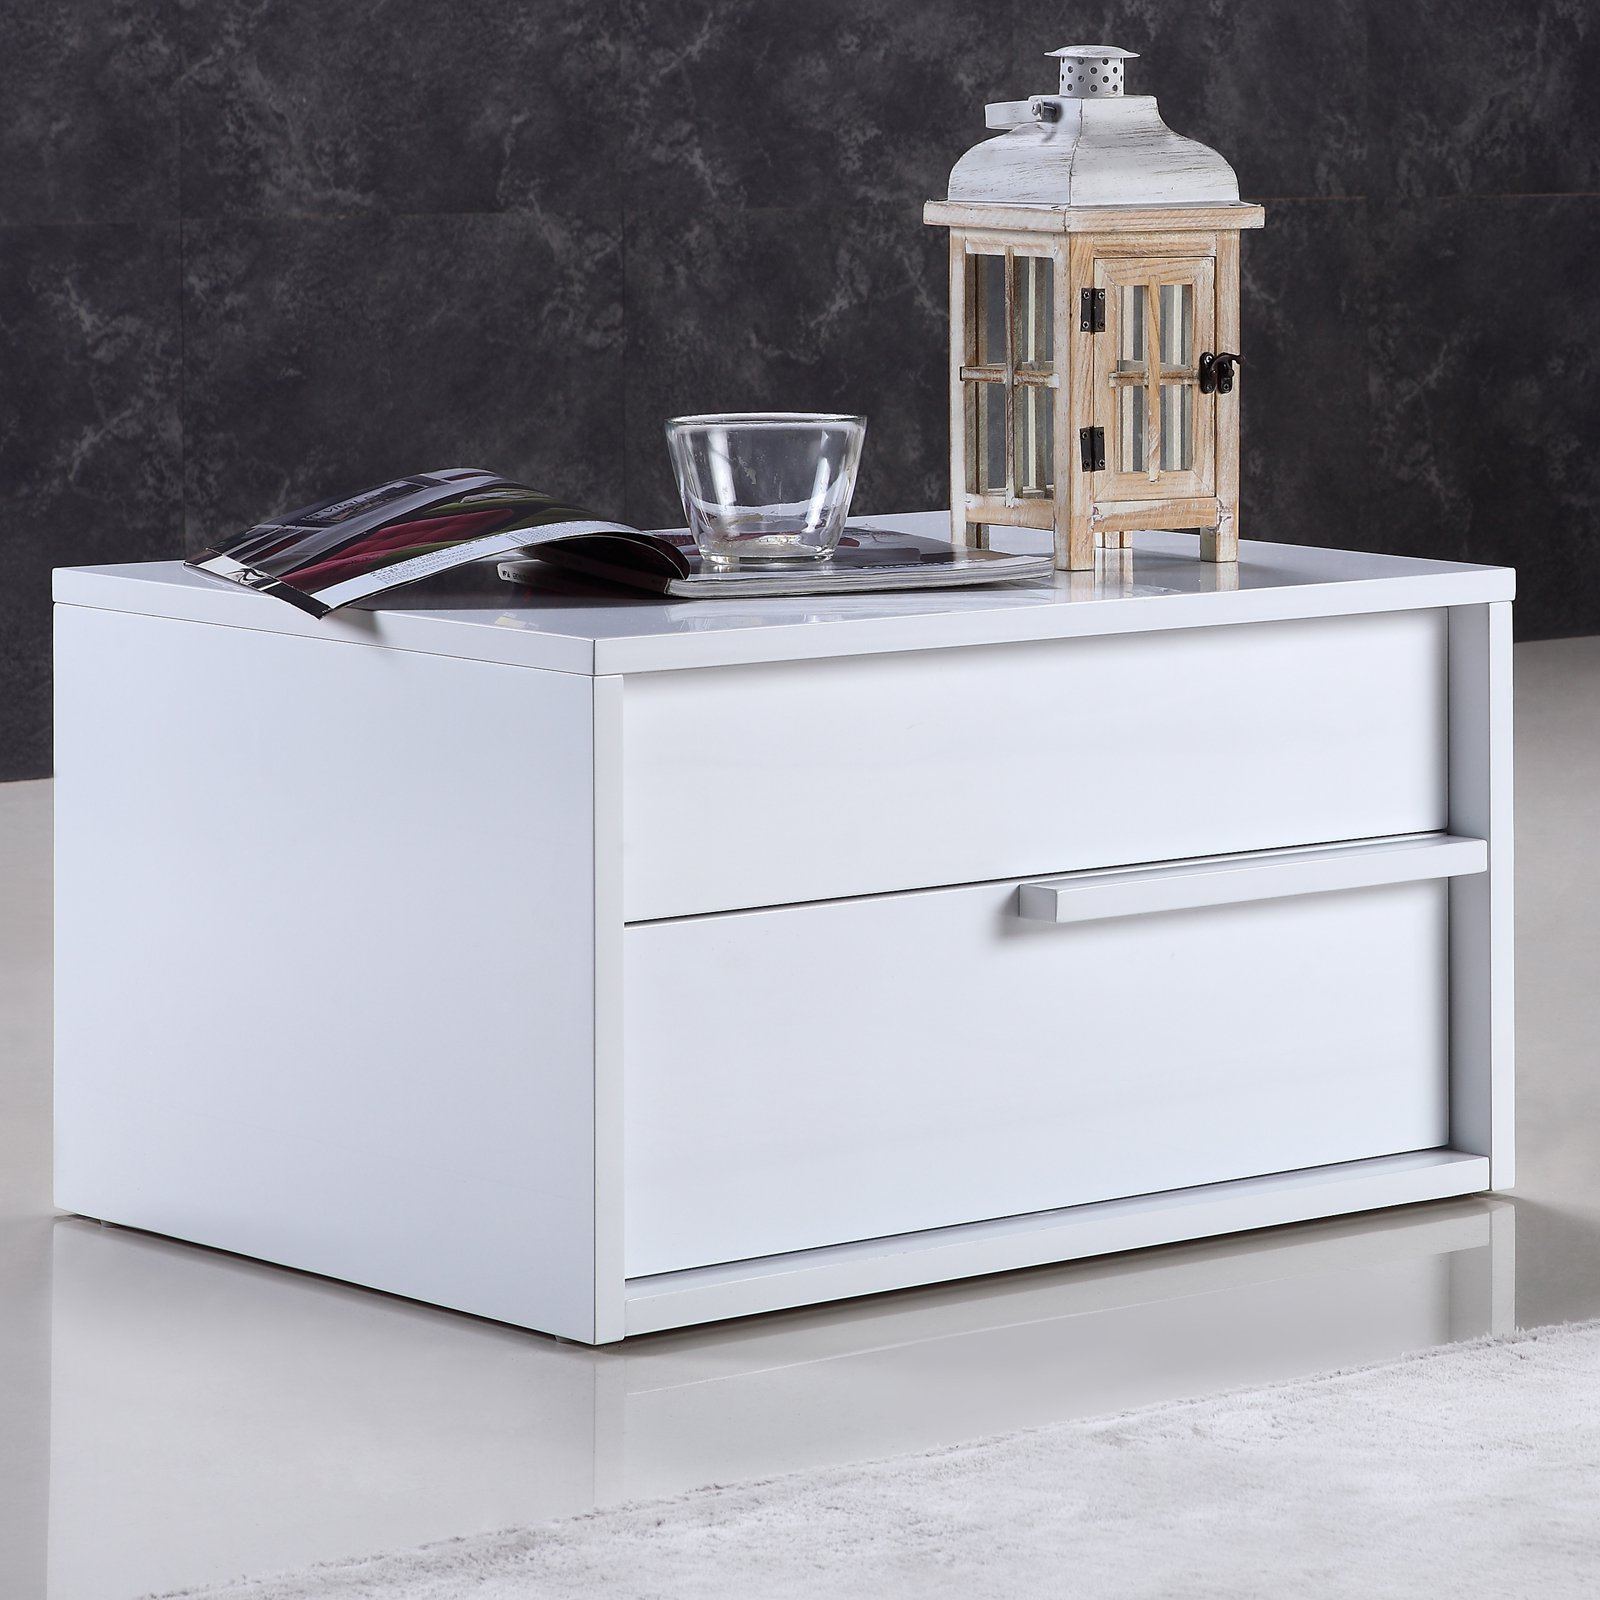 Casabianca Home Dolce 2 Drawer Nightstand